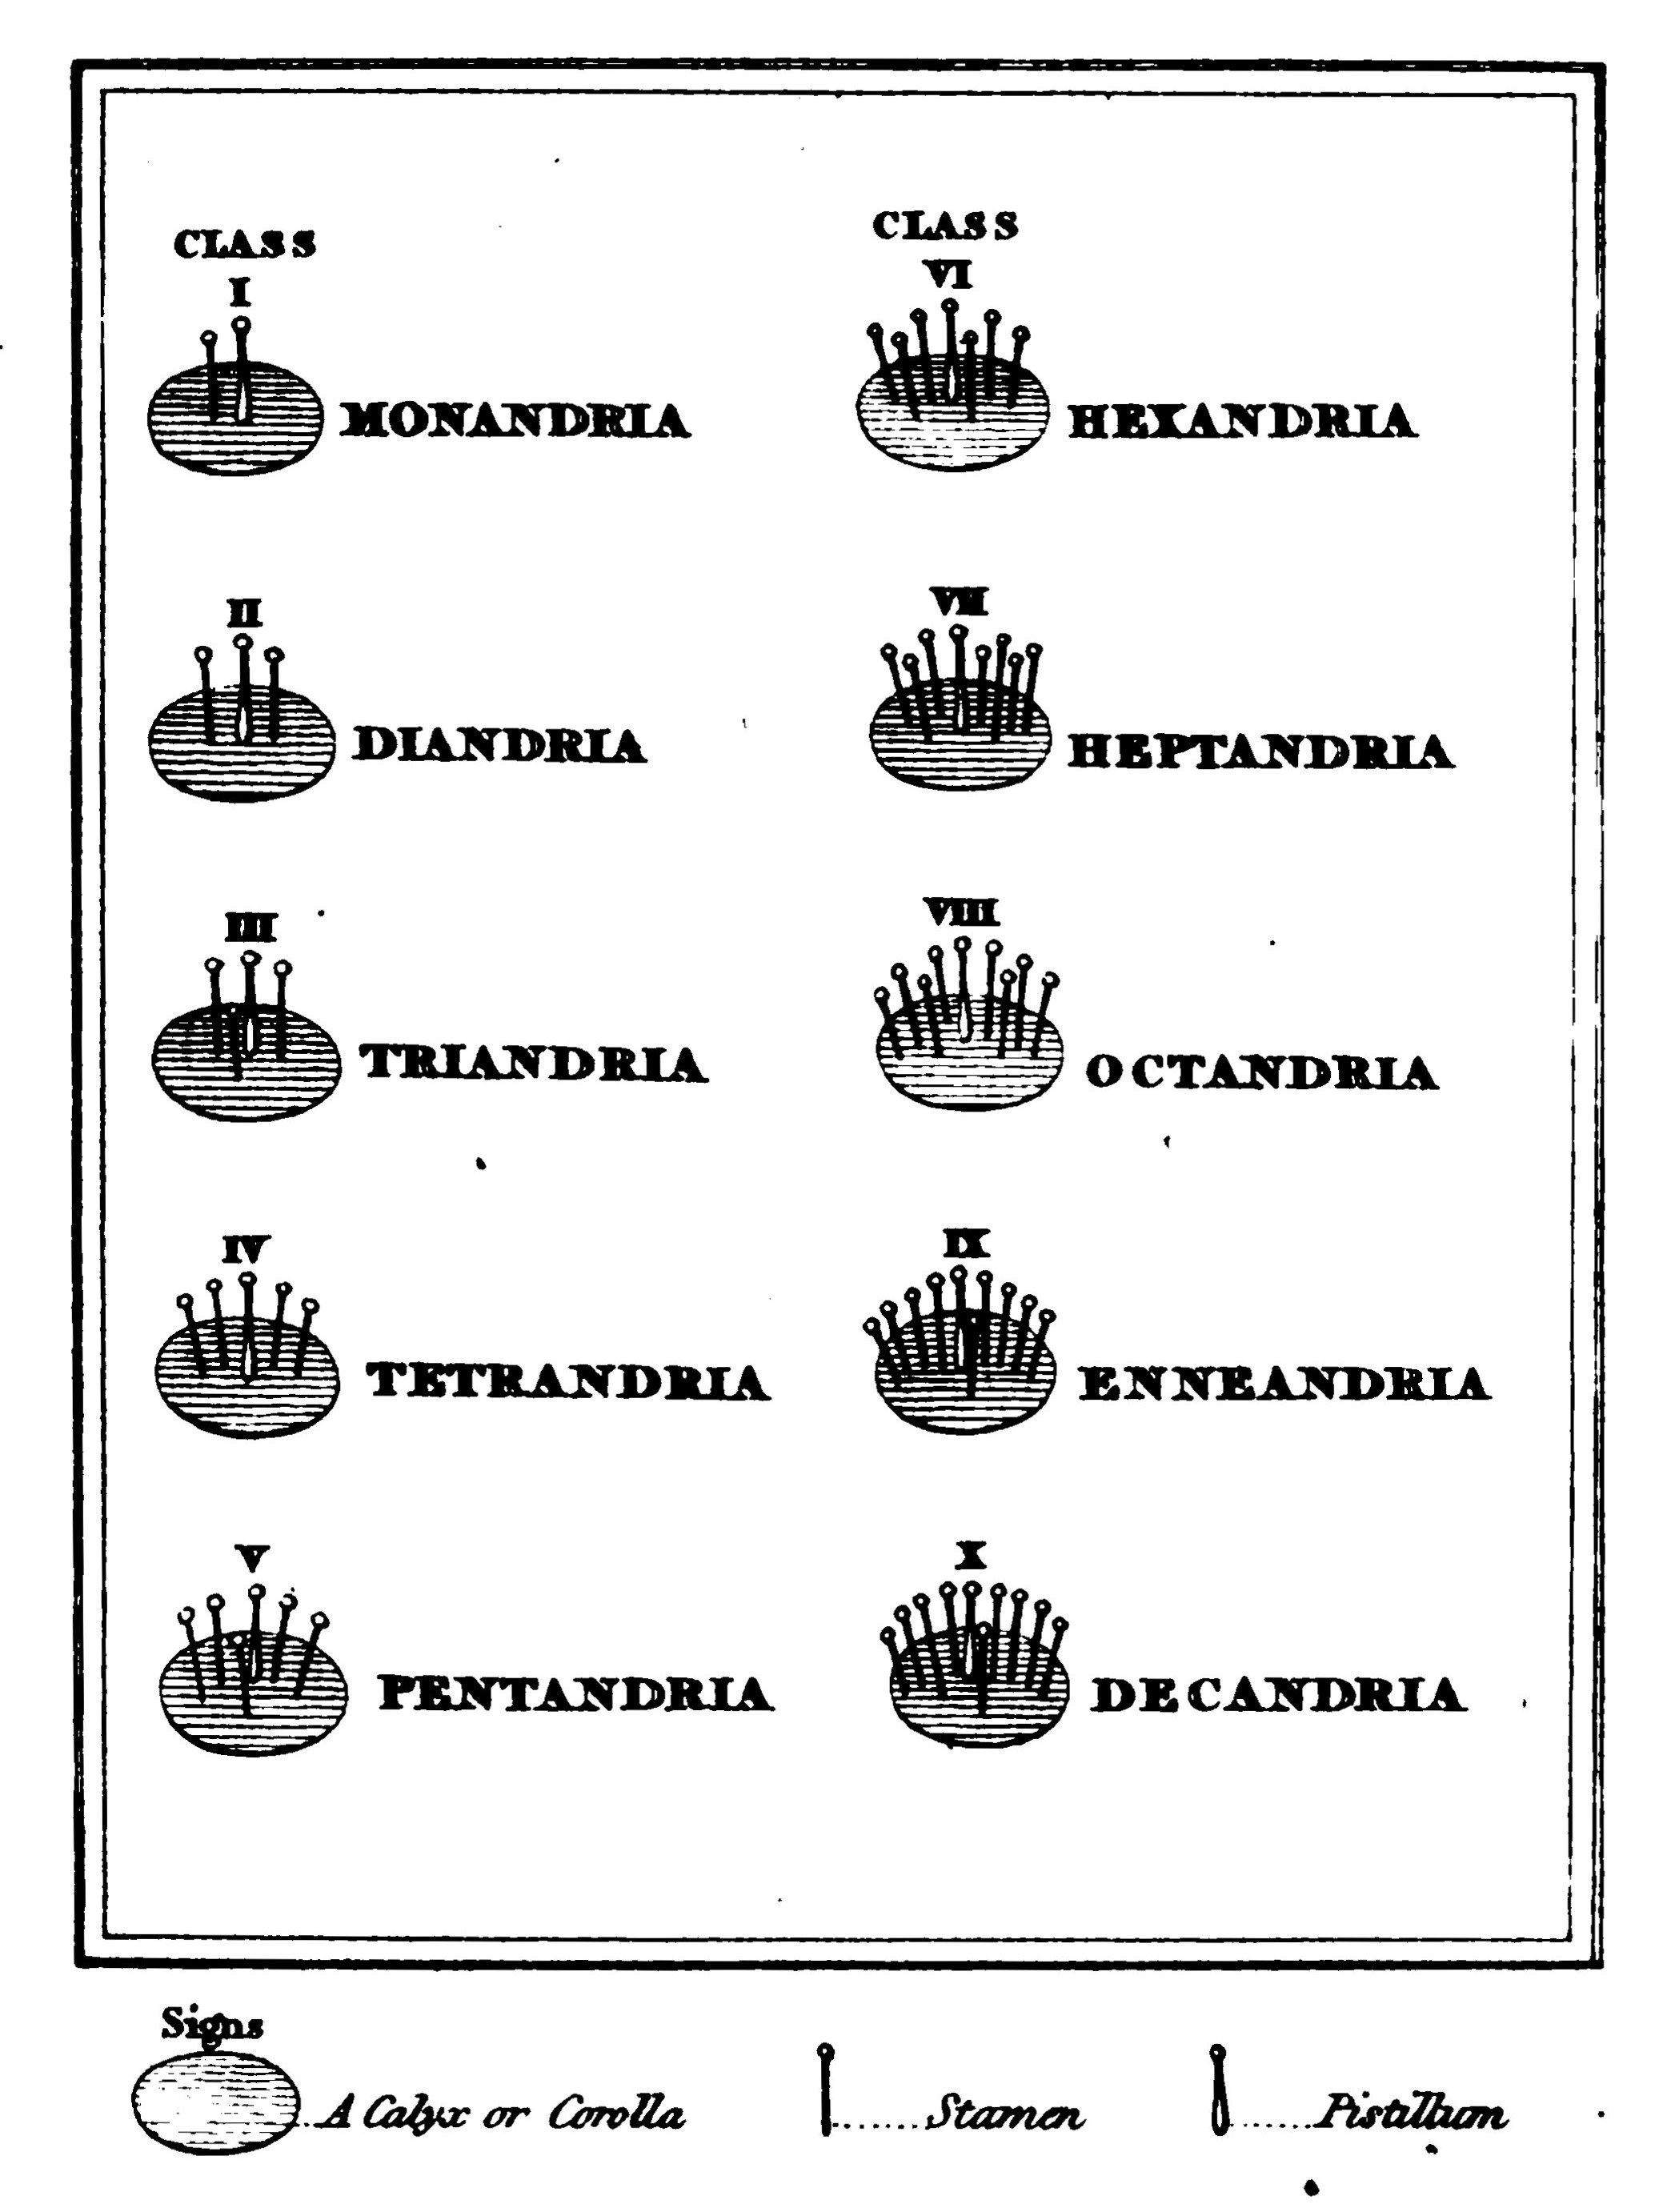 The character of the first ten classes of the Linnaean System of Botany